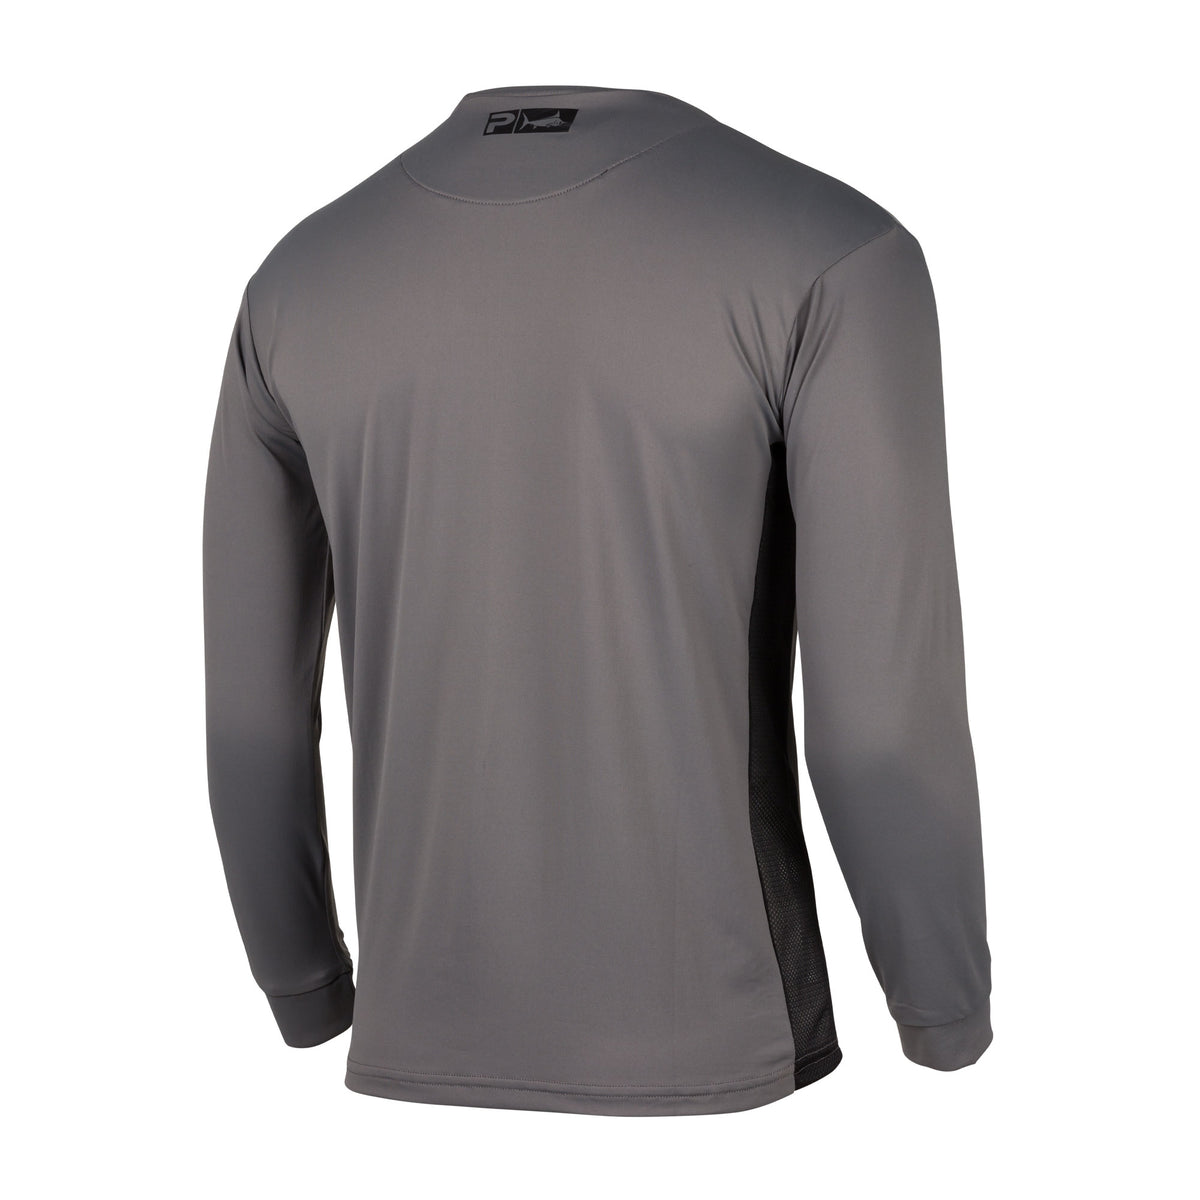 Aquatek Pro Performance Fishing Shirt Big Image - 2